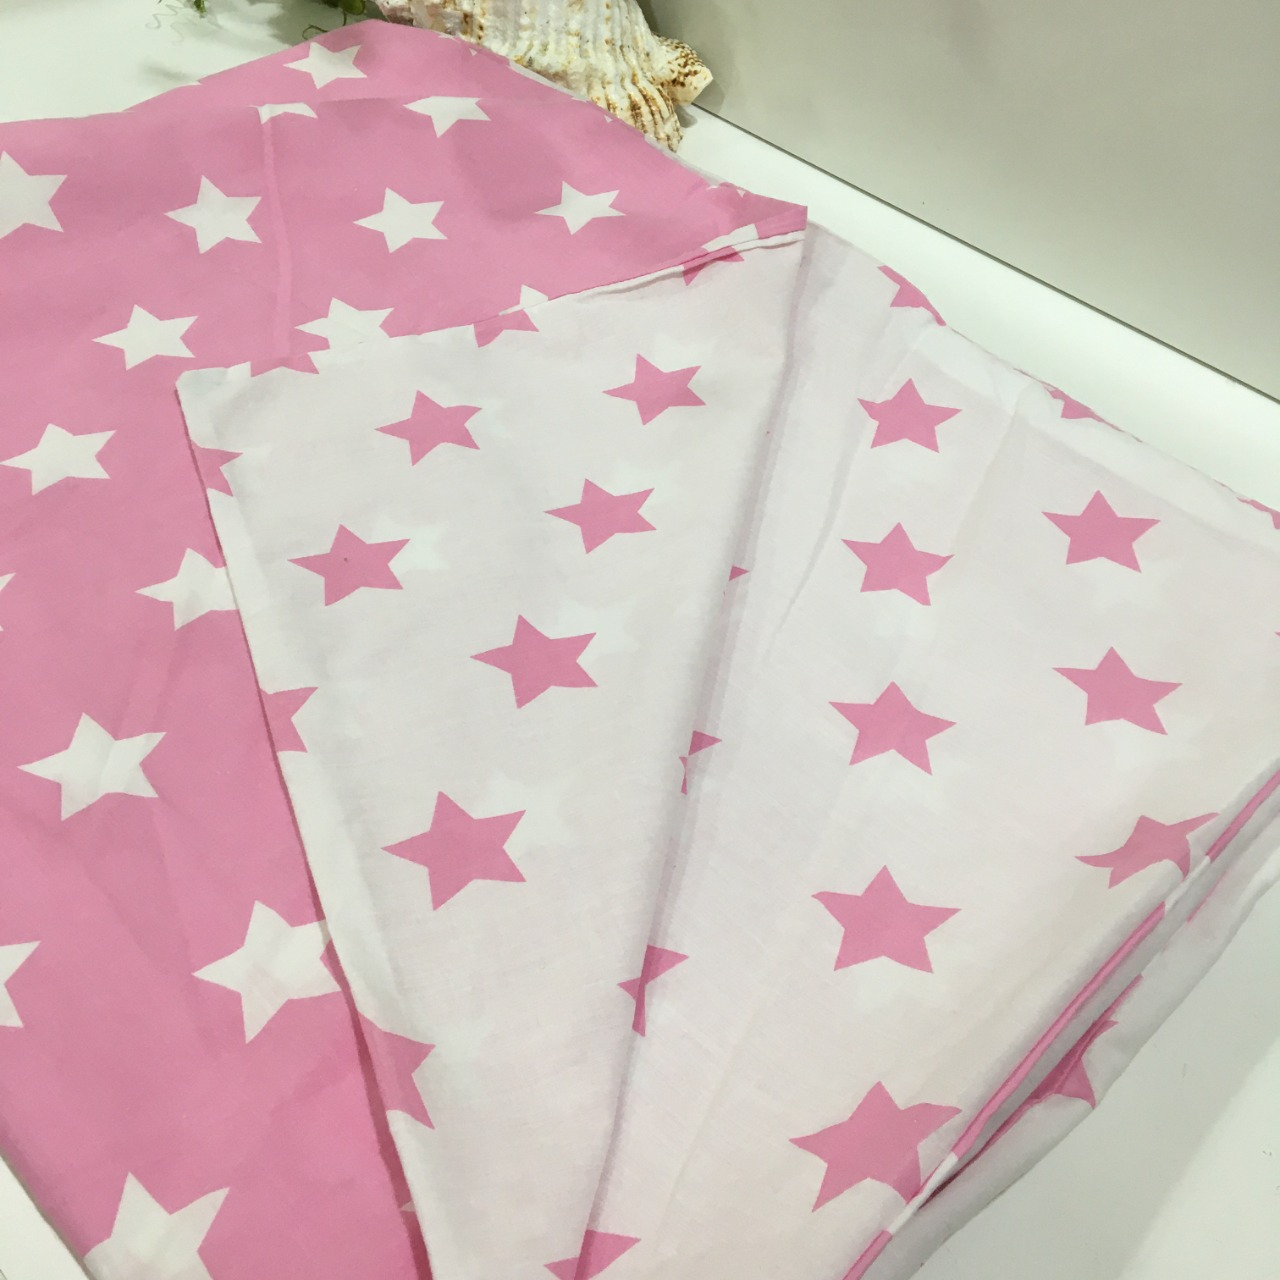 50% Off - Astro, Quilt Cover Set, Single Bed, Pink/White